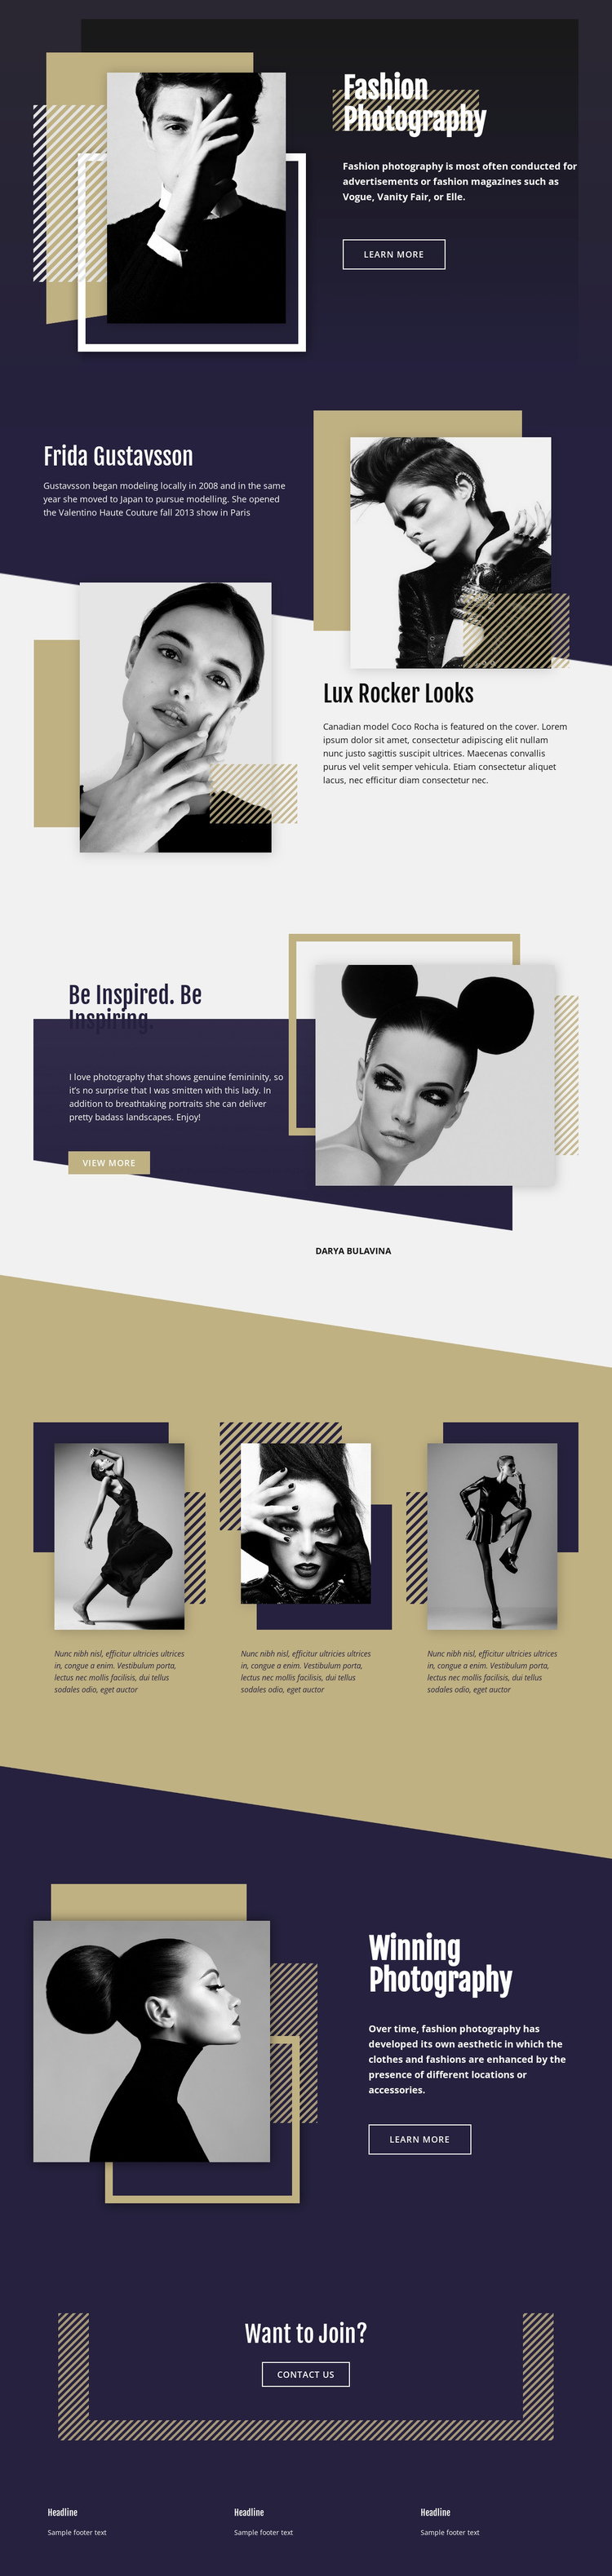 Fashion Photography Website Builder Software